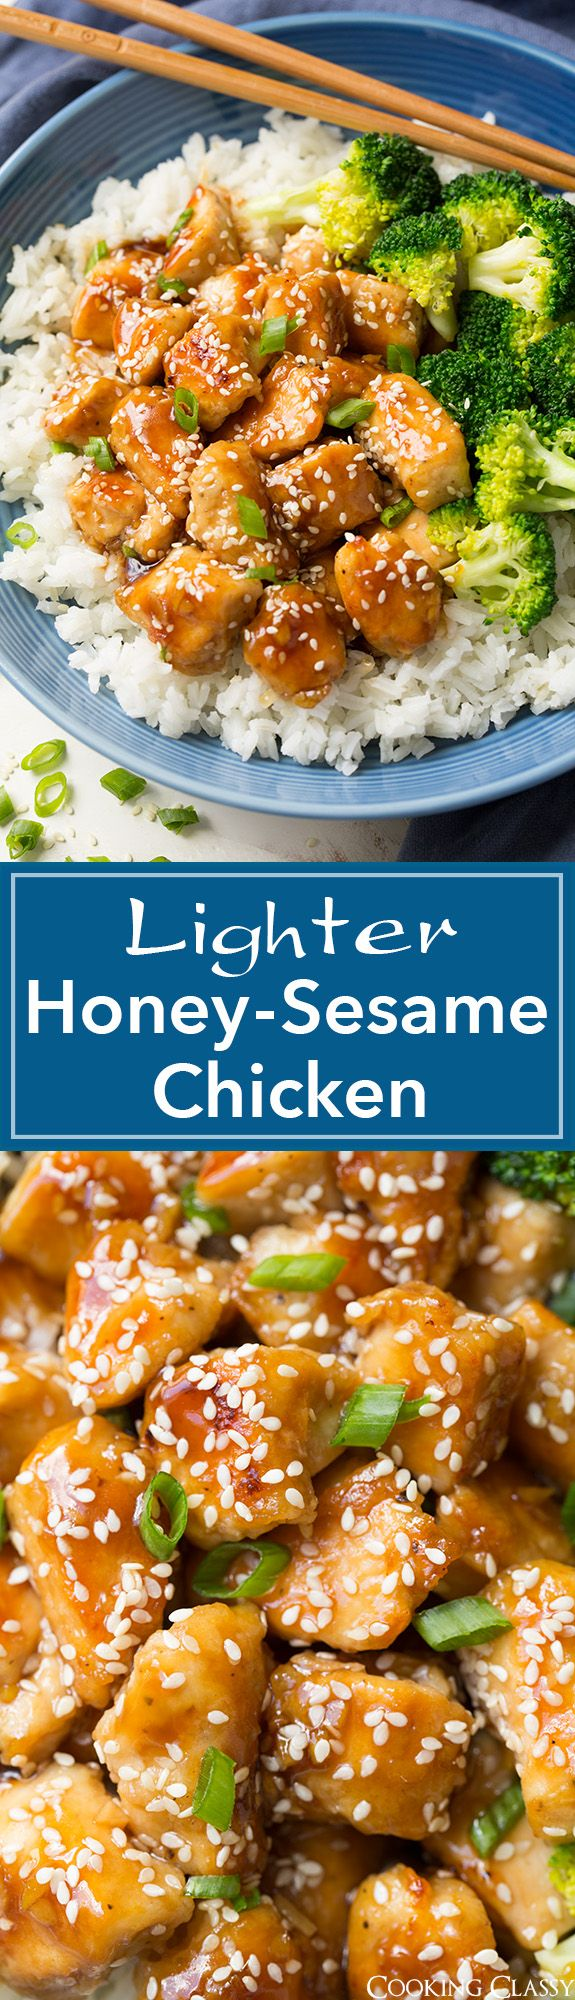 Lighter Honey-Sesame Chicken – you won't even miss the frying! Seriously delicious and full of flavor!